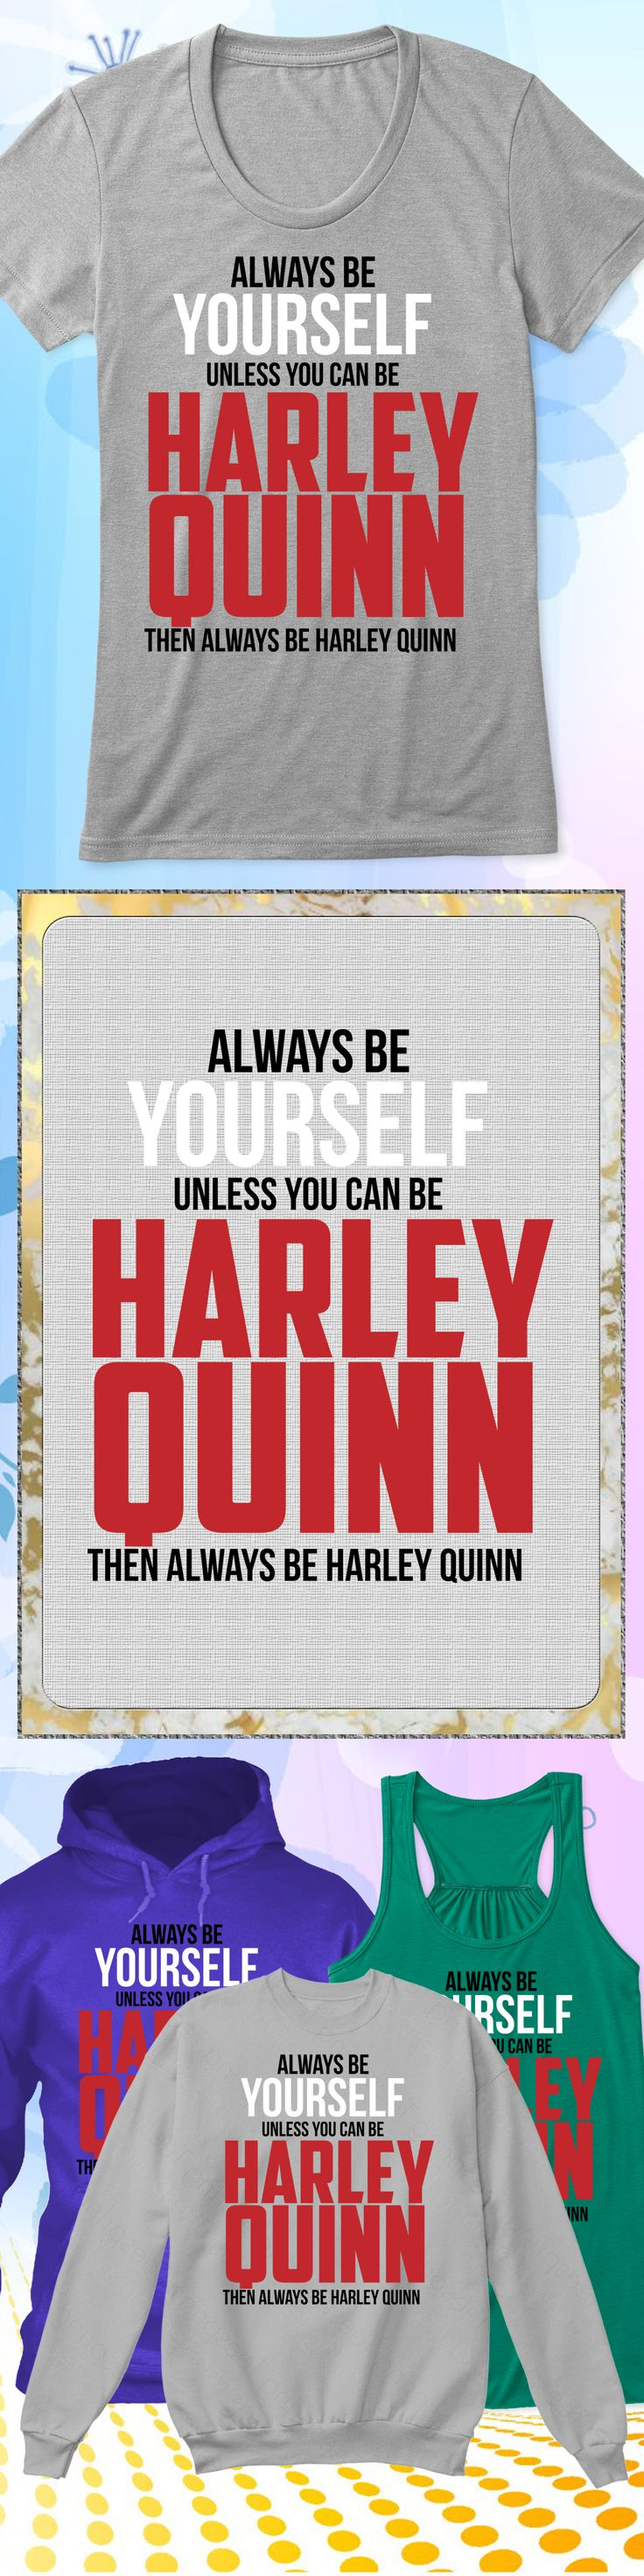 Always Be Harley-Quinn - Limited edition. Order 2 or more for friends/family & save on shipping! Makes a great gift!